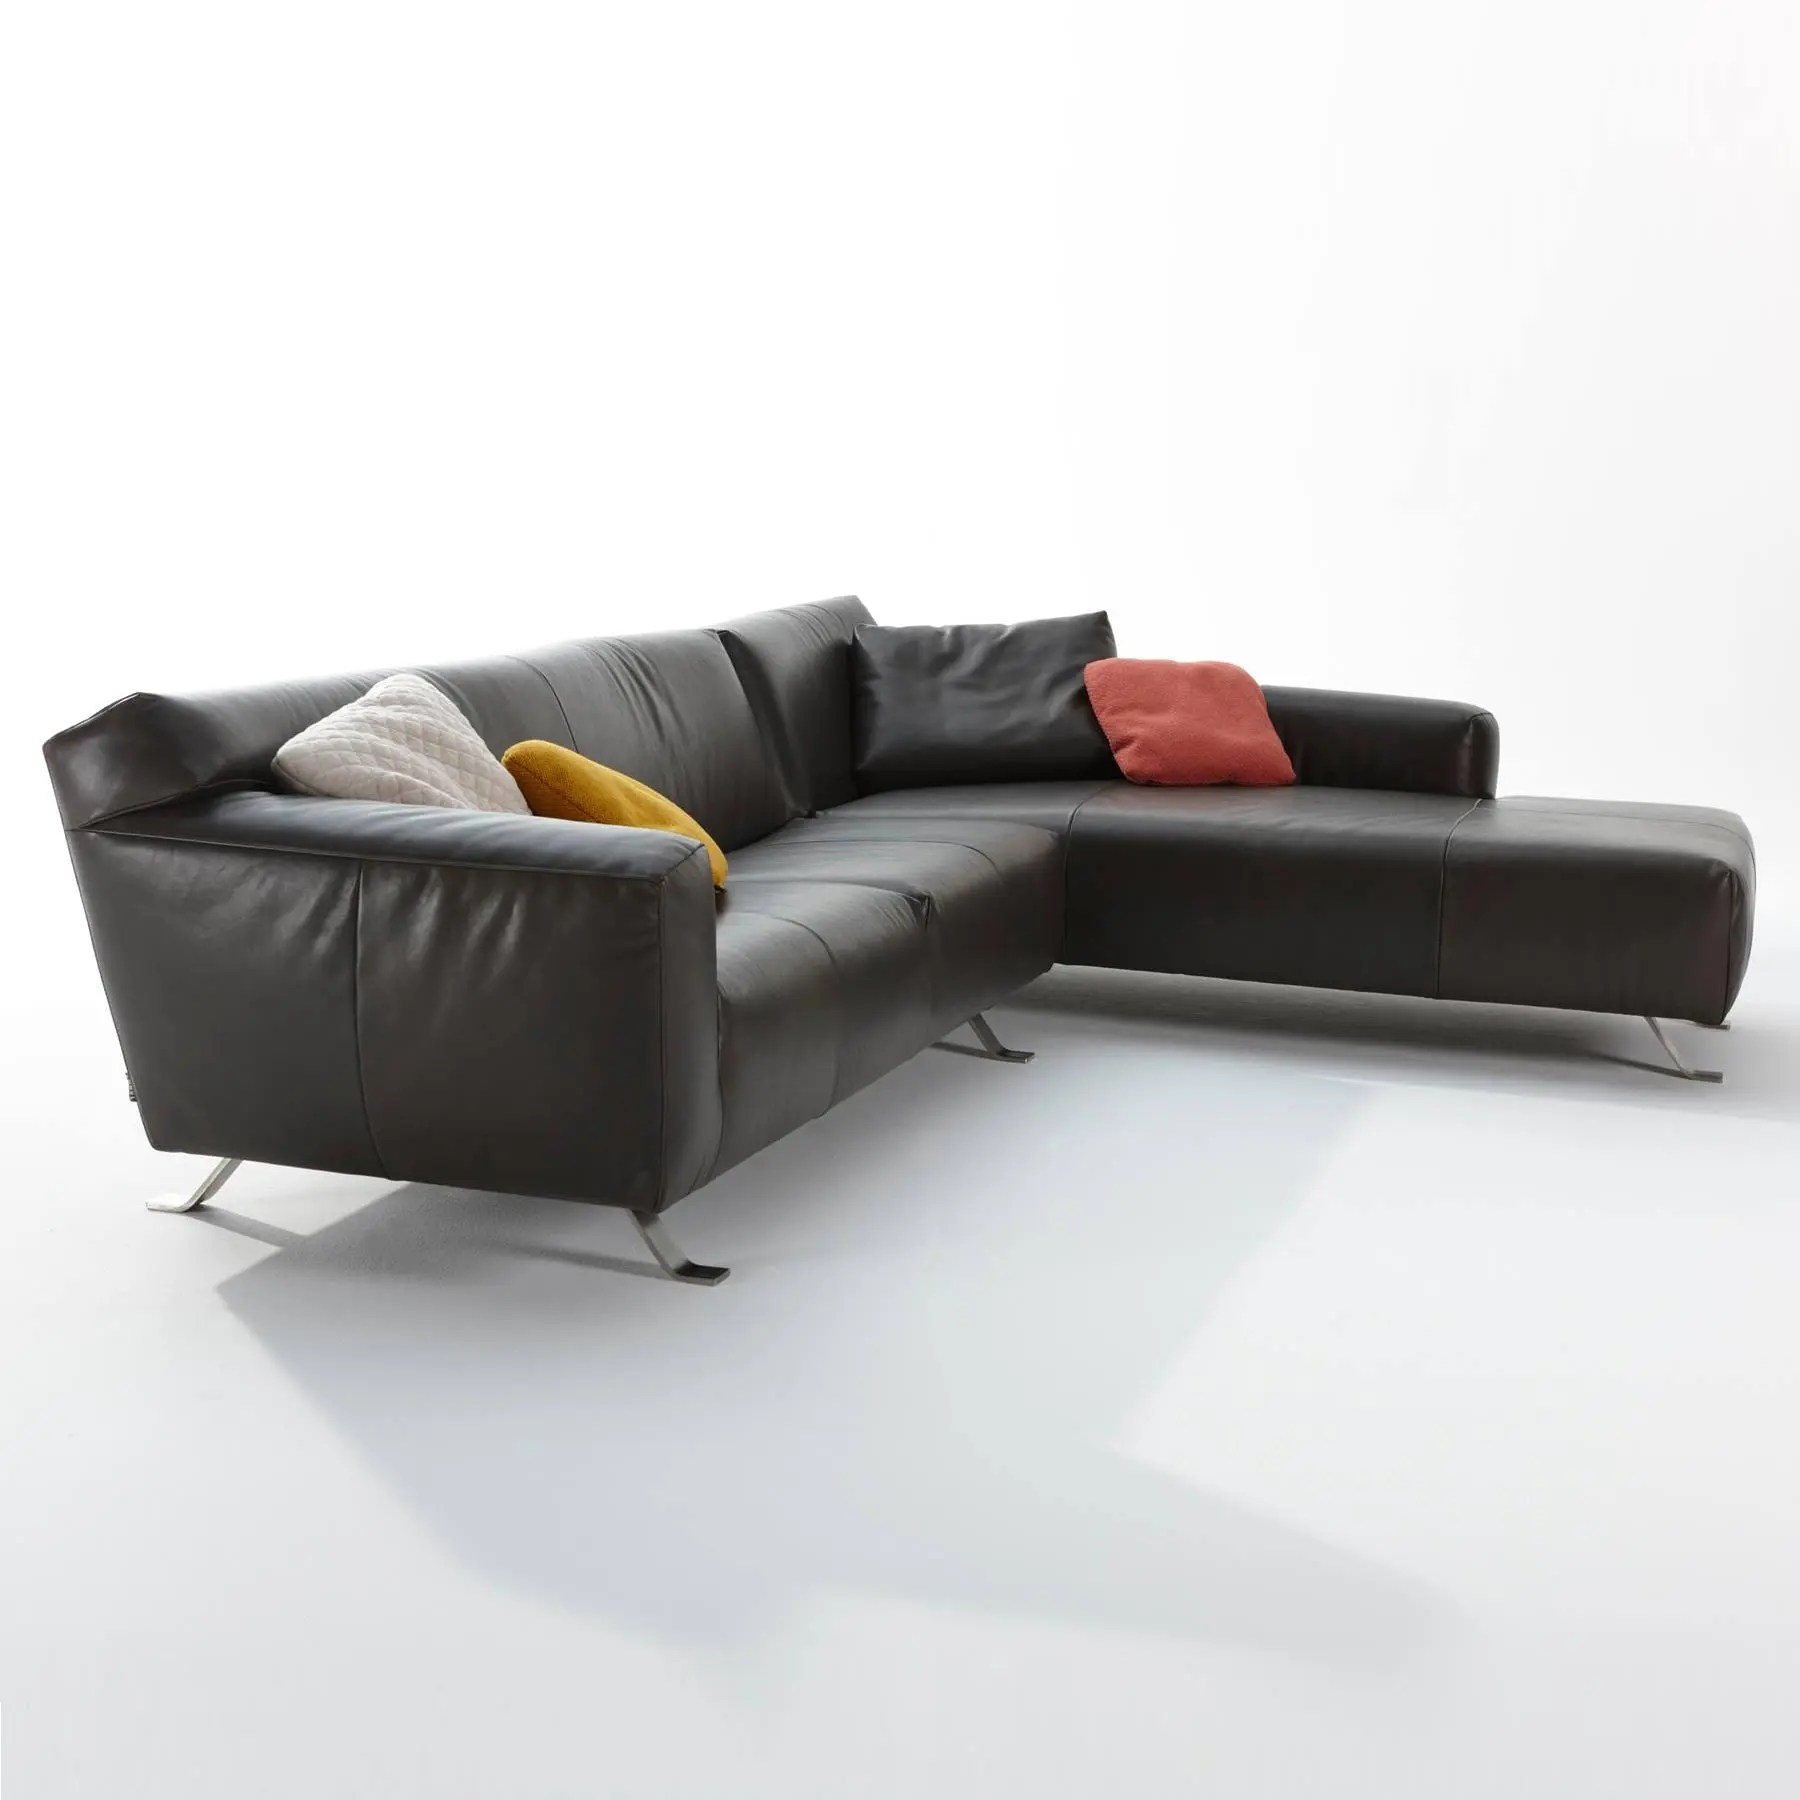 sofa w chaise wooden cushion cover designs santiago lounge modern intentions shop